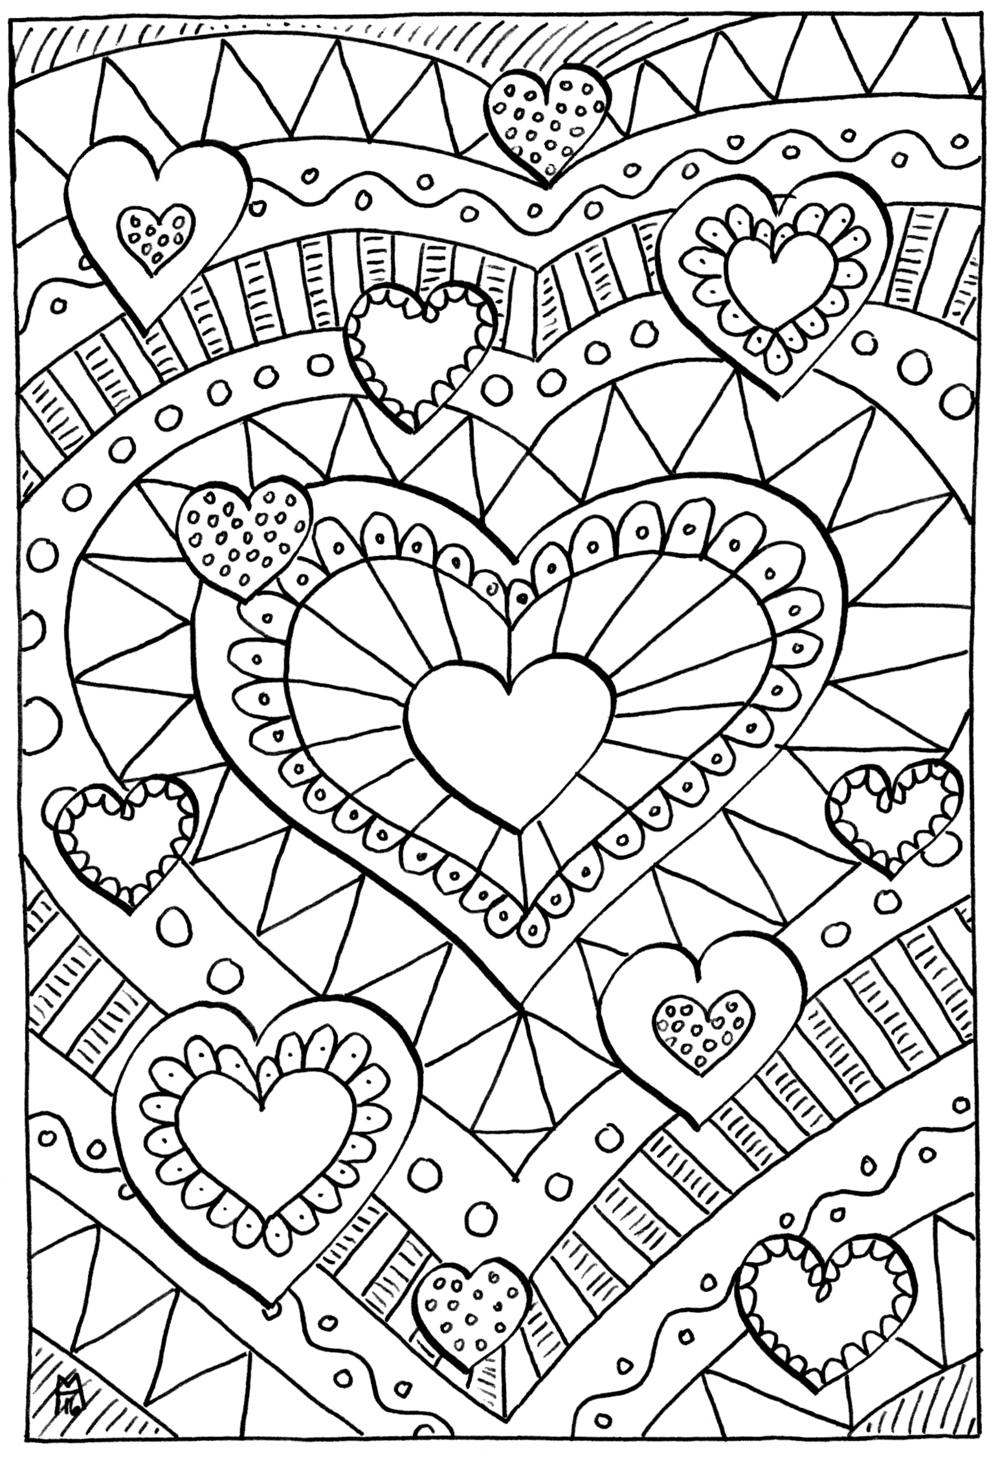 Healing Hearts Coloring Page  Heart coloring pages, Love coloring